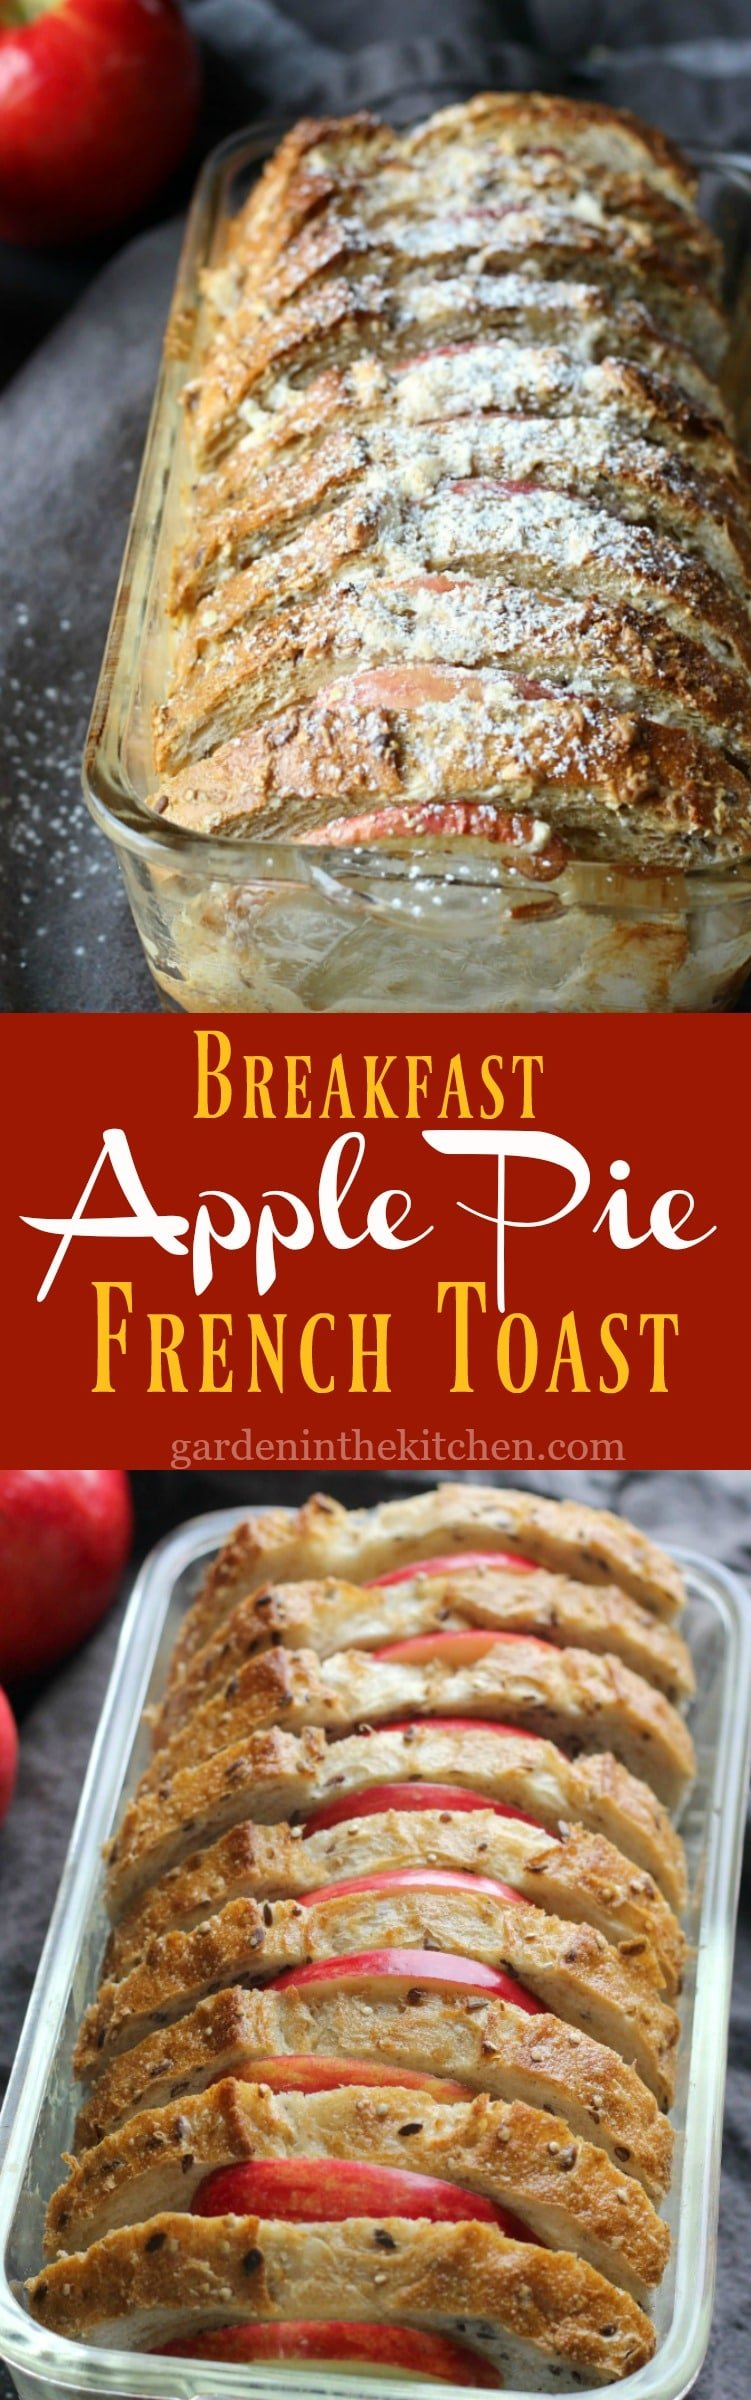 Breakfast Apple Pie French Toast